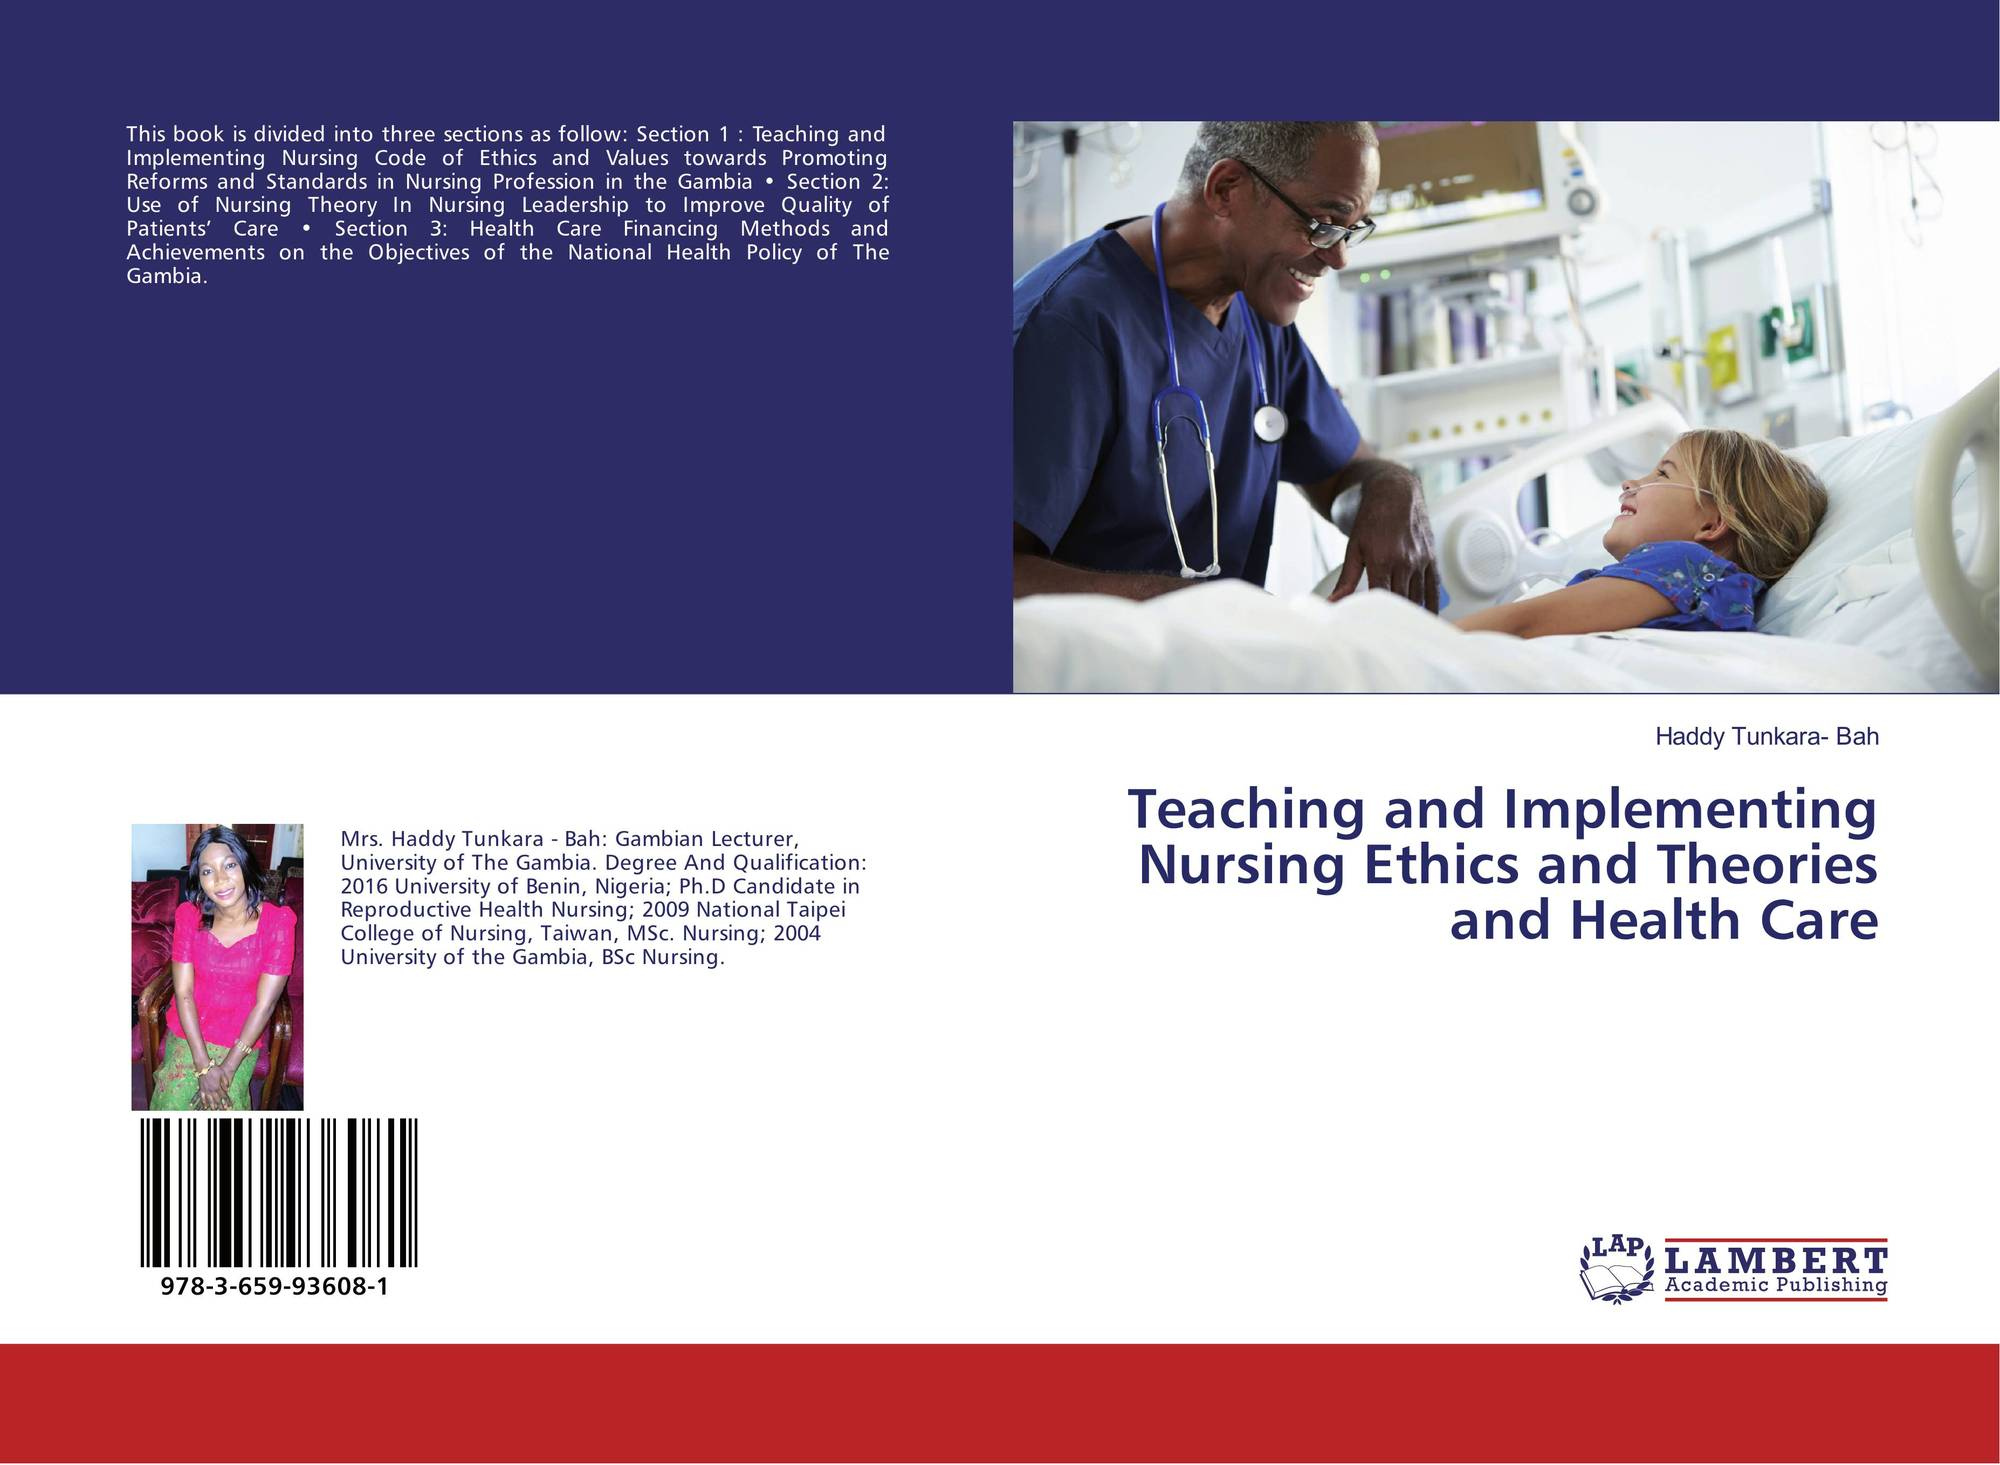 what ethics of care in nursing A code of ethics states the primary goals and values of the profession it indicates a profession's acceptance of the trust and responsibility with which it has been empowered by society a code of ethics serves to inform both nurses and society of the profession's expectations and requirements in ethical matters.